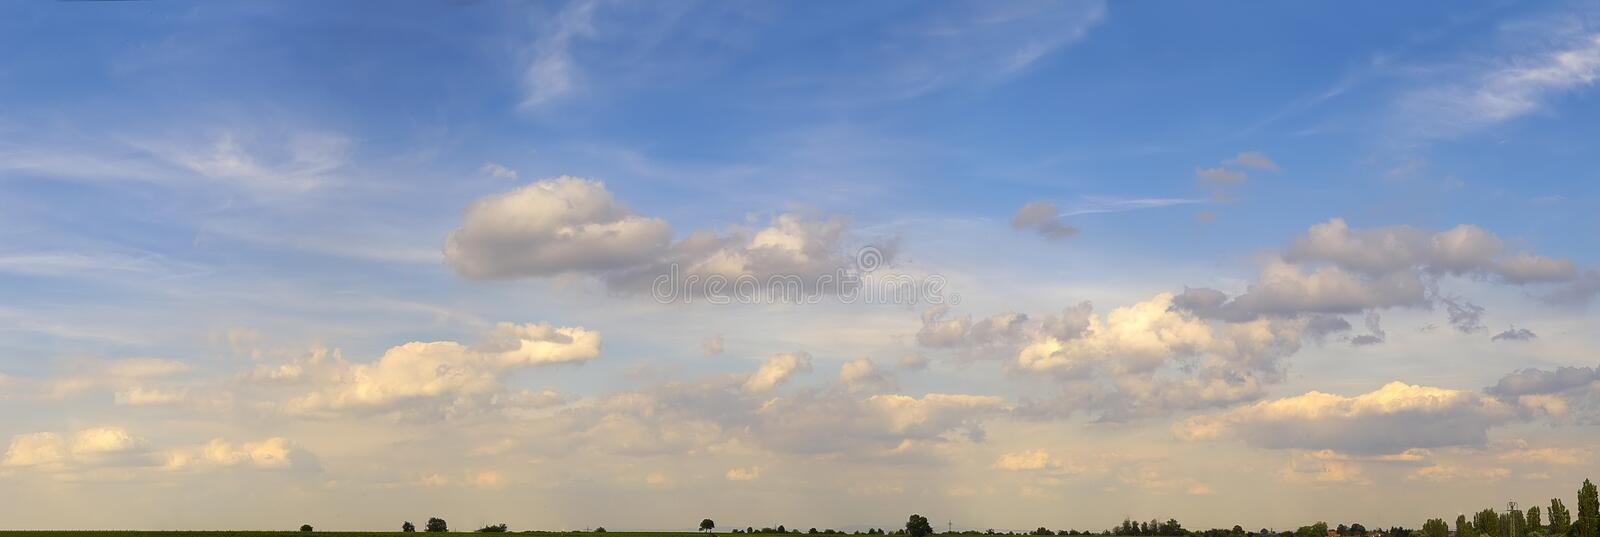 Download Sky pano stock image. Image of halo, religion, blue, rural - 200785